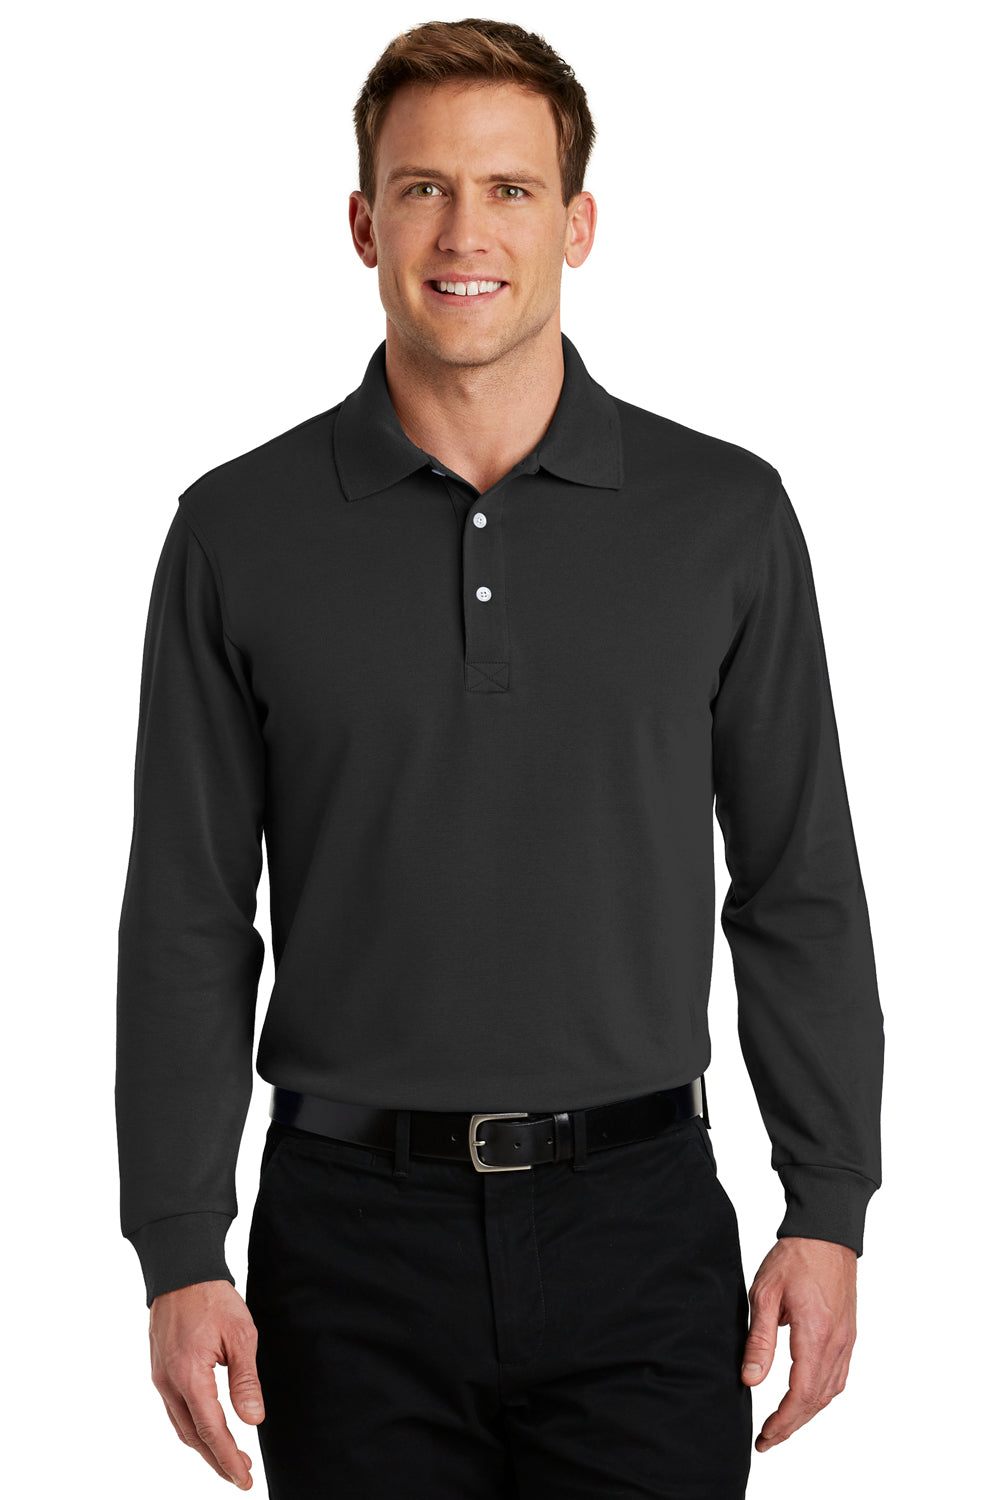 Port Authority K455LS Mens Rapid Dry Moisture Wicking Long Sleeve Polo Shirt Black Front